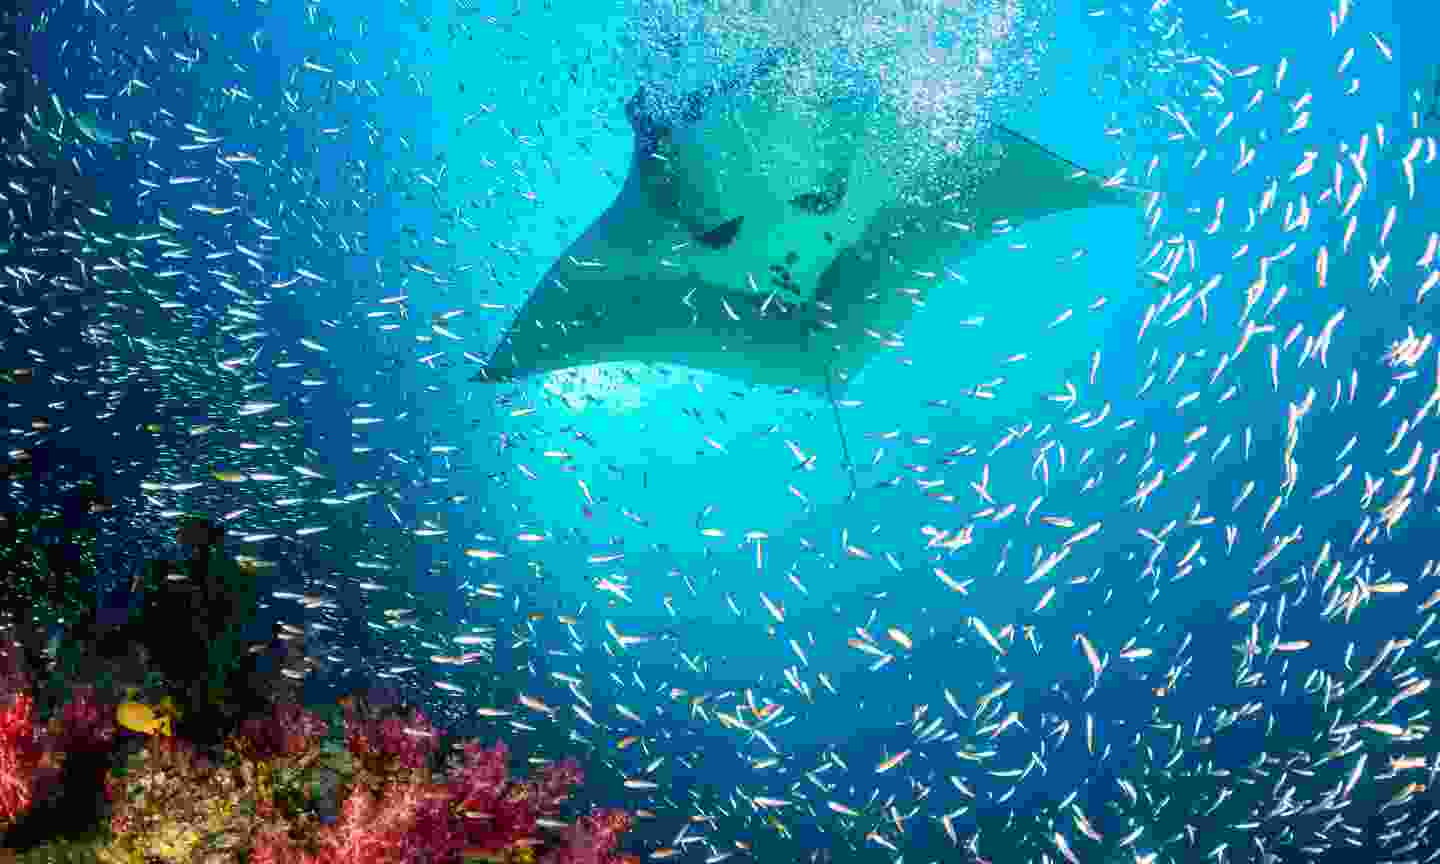 A manta ray swimming over a colourful coral reef in the Maldives (Shutterstock)